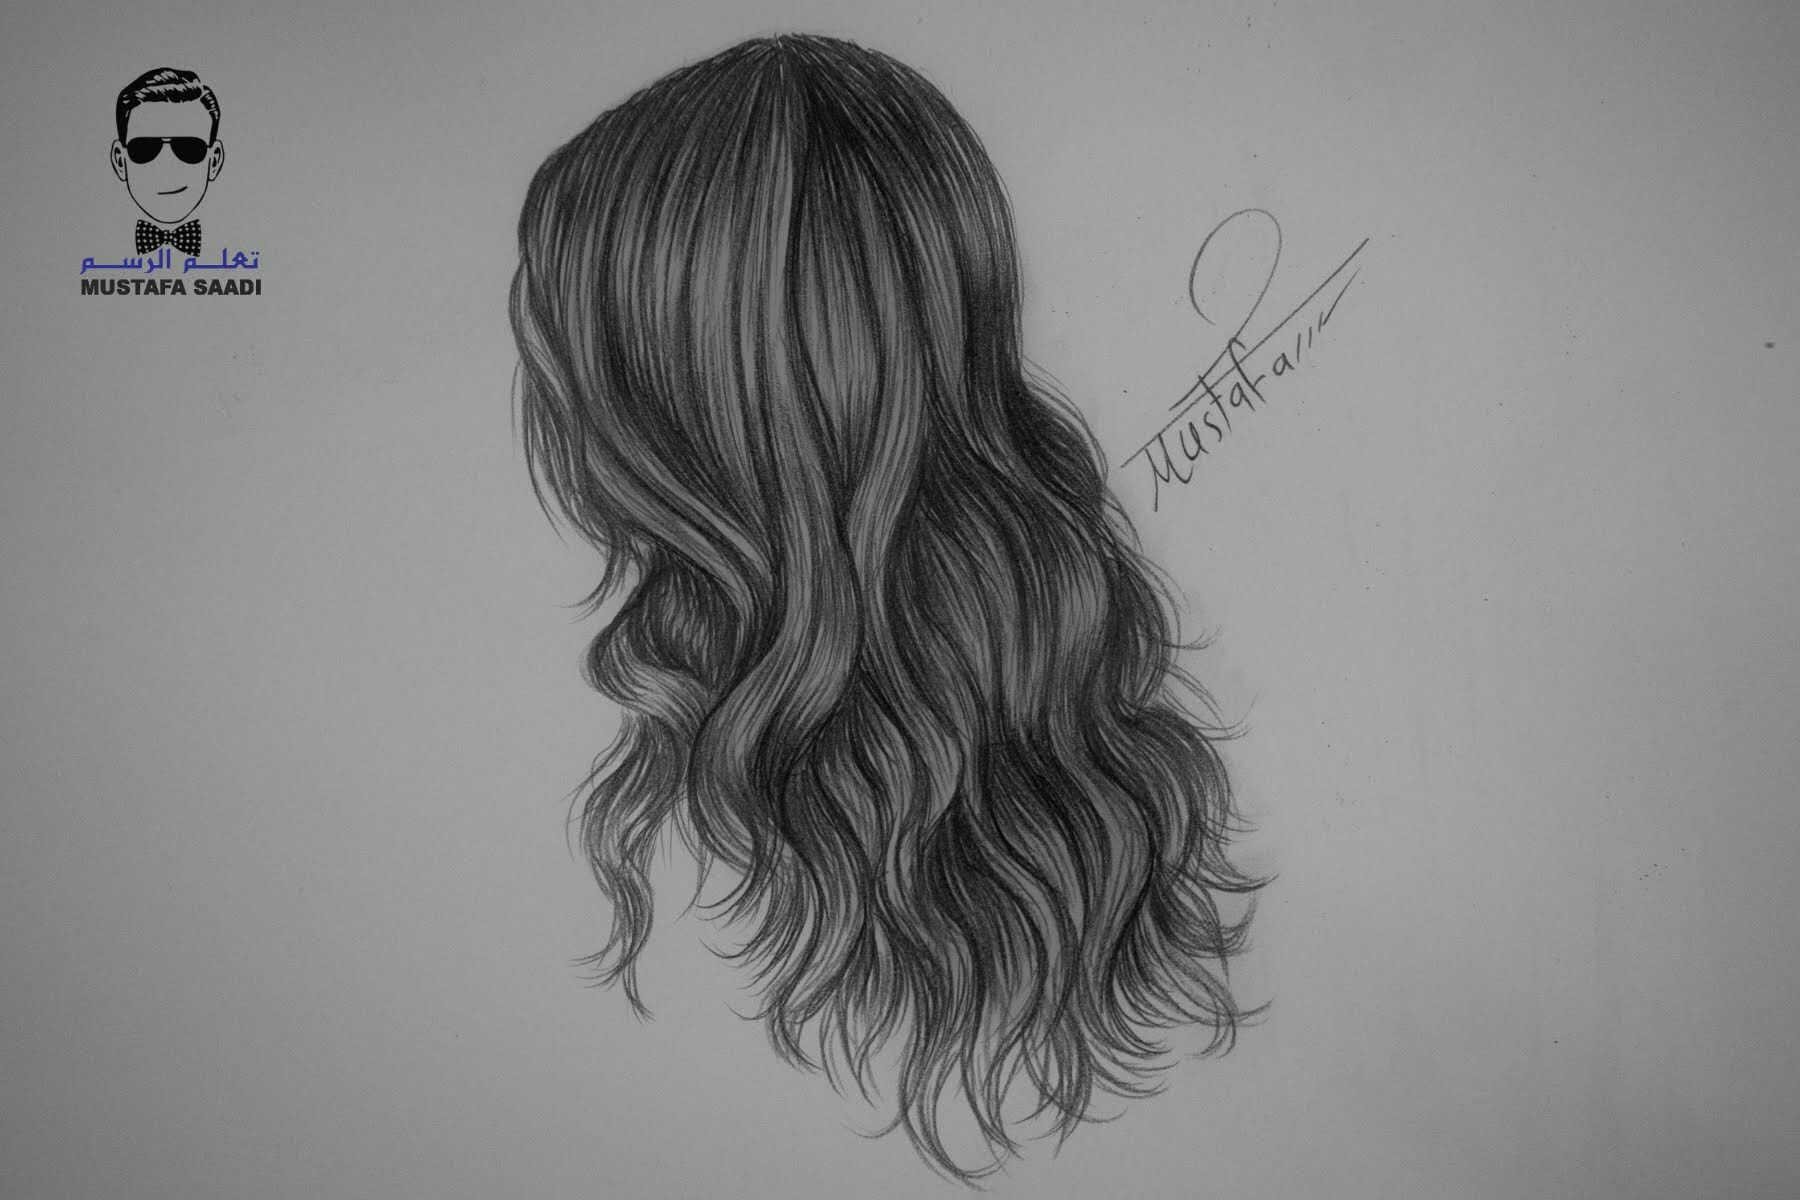 Pin By Shymaa Motawea On Mona How To Draw Hair Step By Step Hairstyles Short Hair Styles For Round Faces